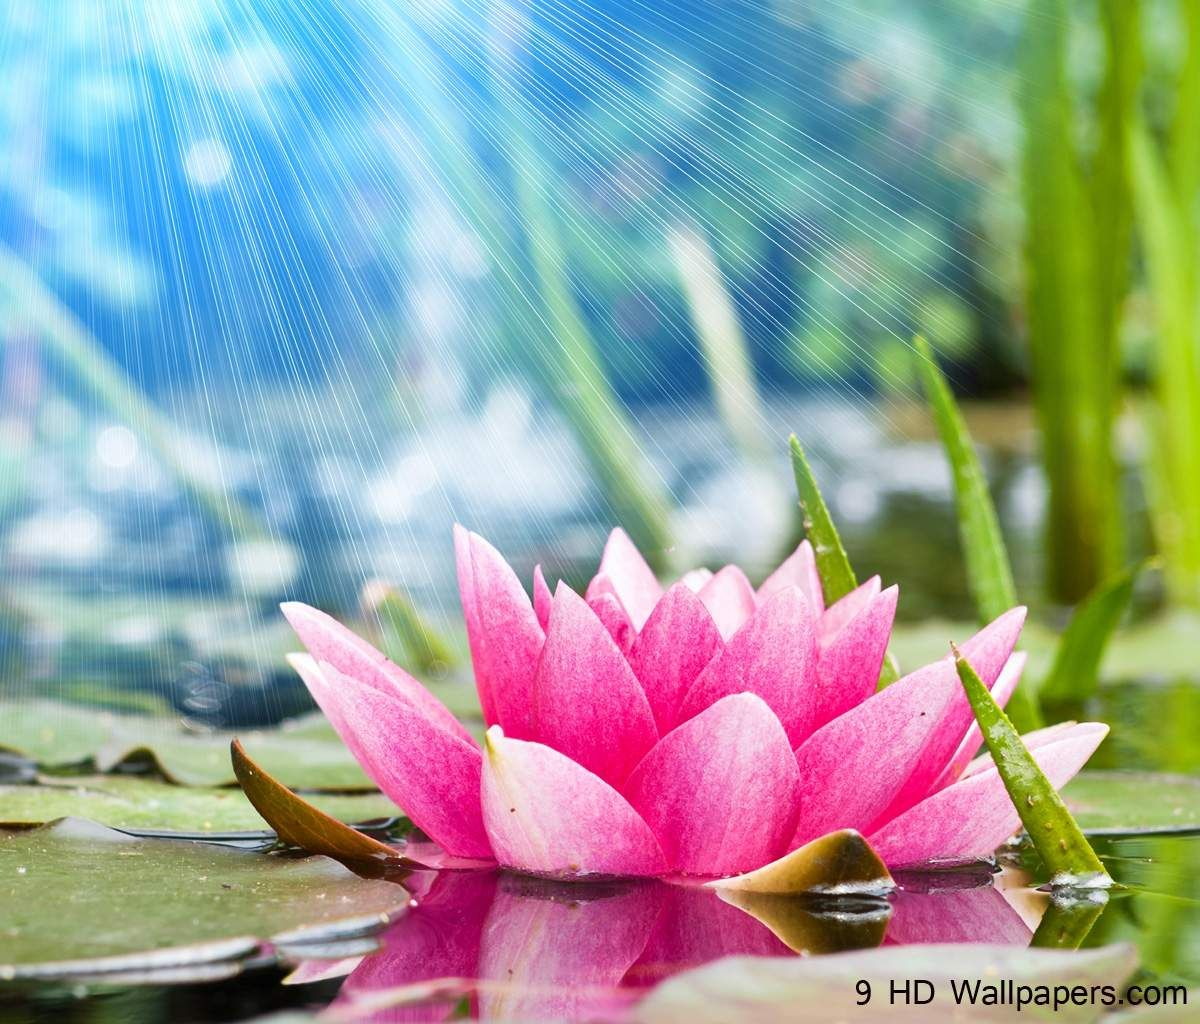 Lotus Flower Wallpapers For Android Lotus flower wallpaper